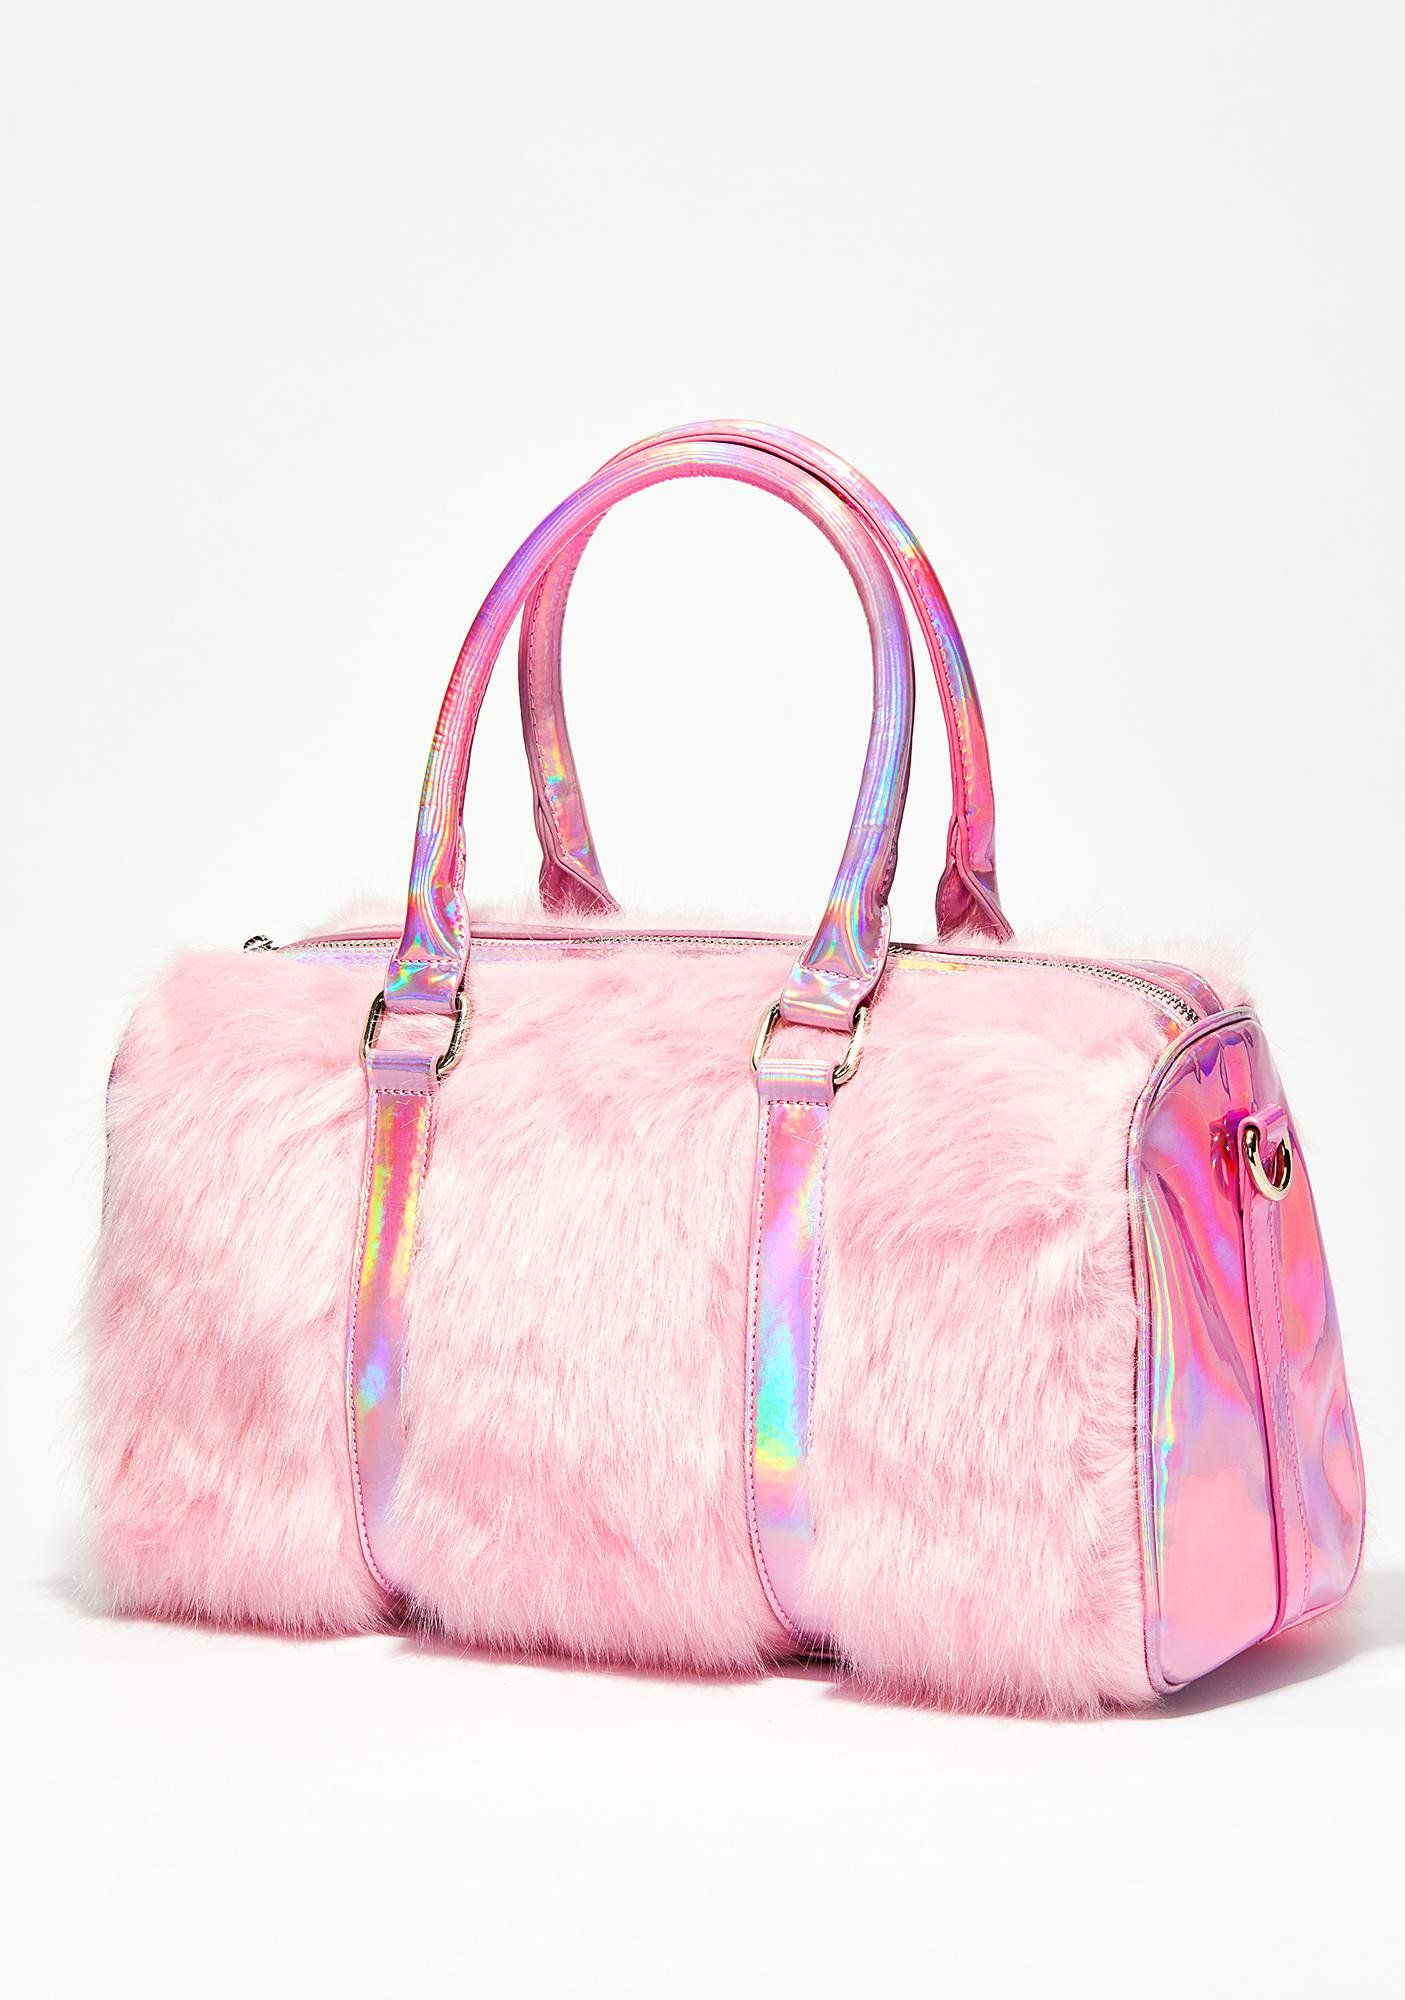 601afce071 Sugar Thrillz Shagadelic Purse